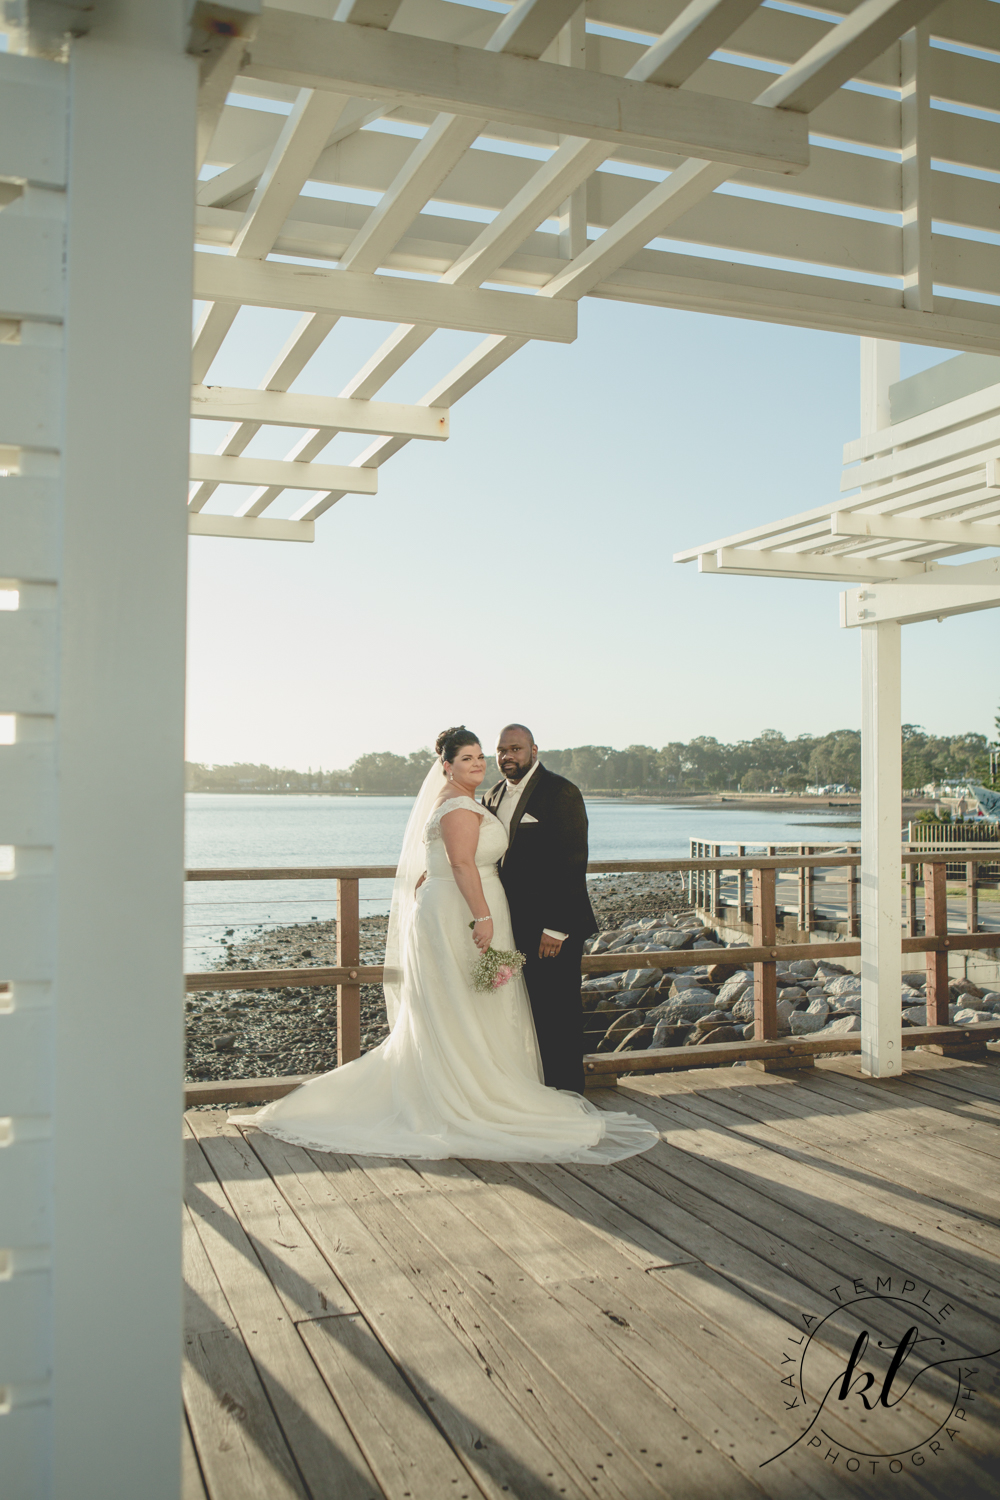 Brisbane_Wedding_Photographer-95.jpg